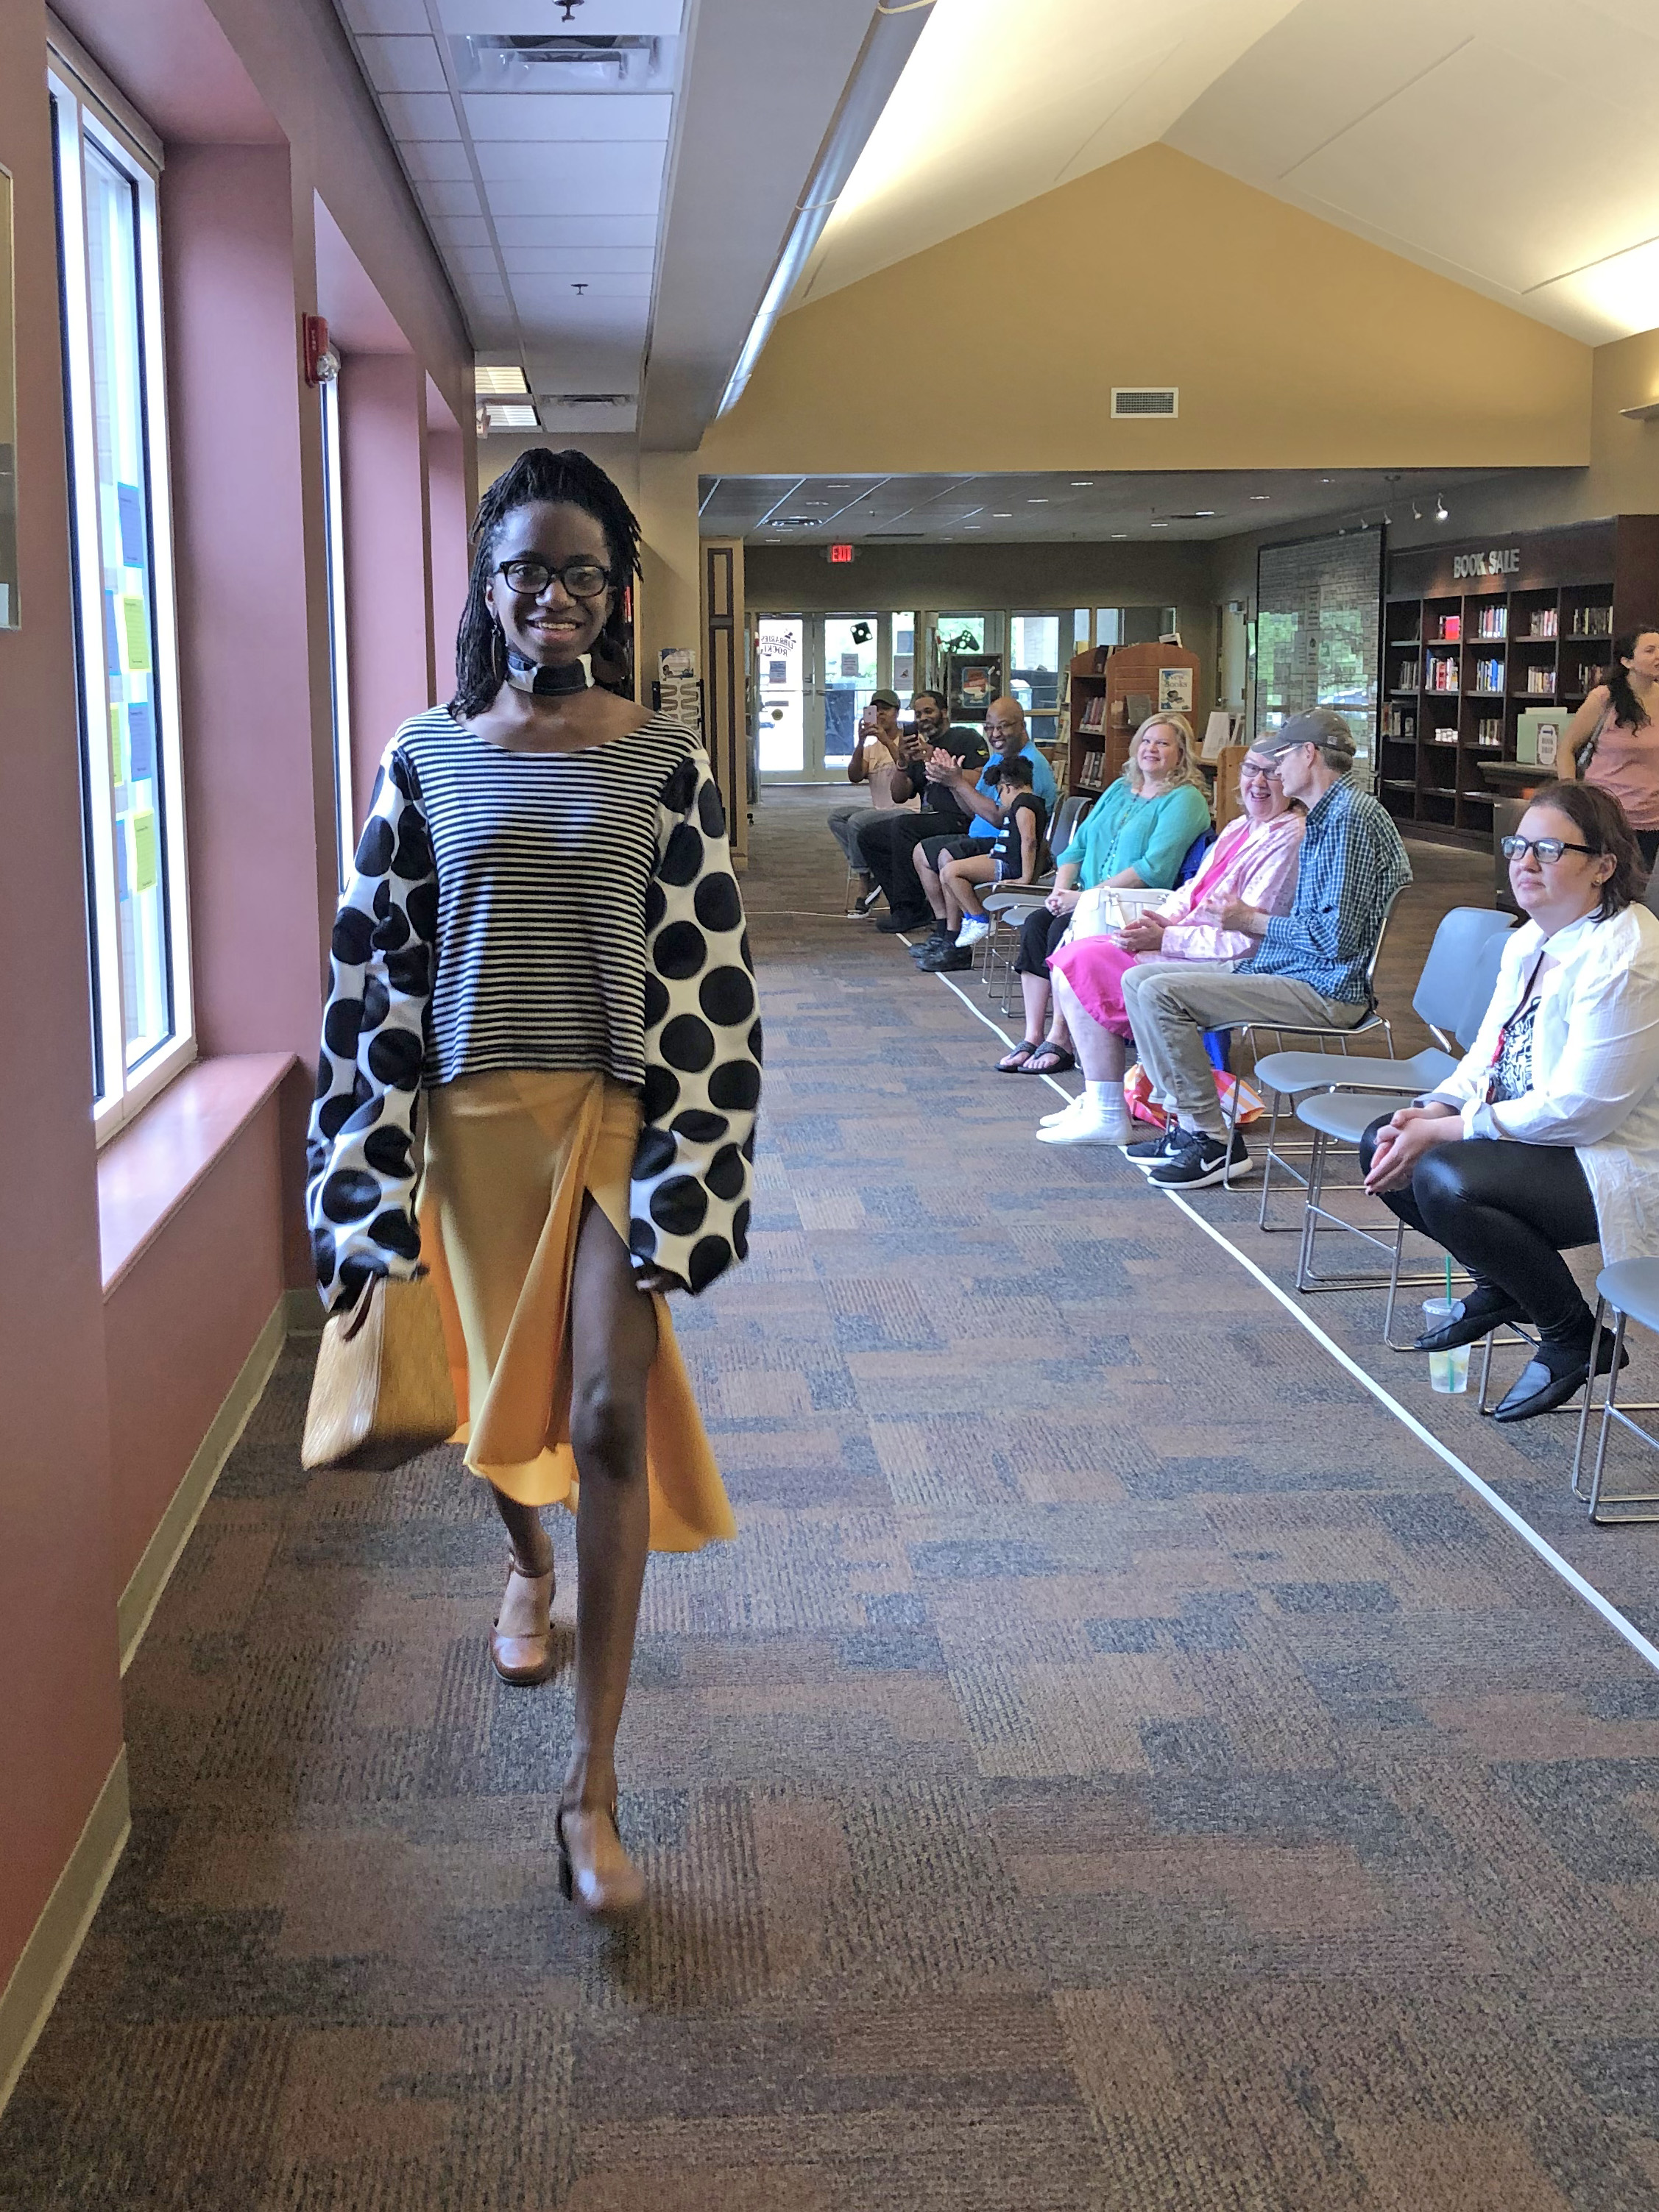 A young lady models clothes created using a sewing machine borrowed from her local library.